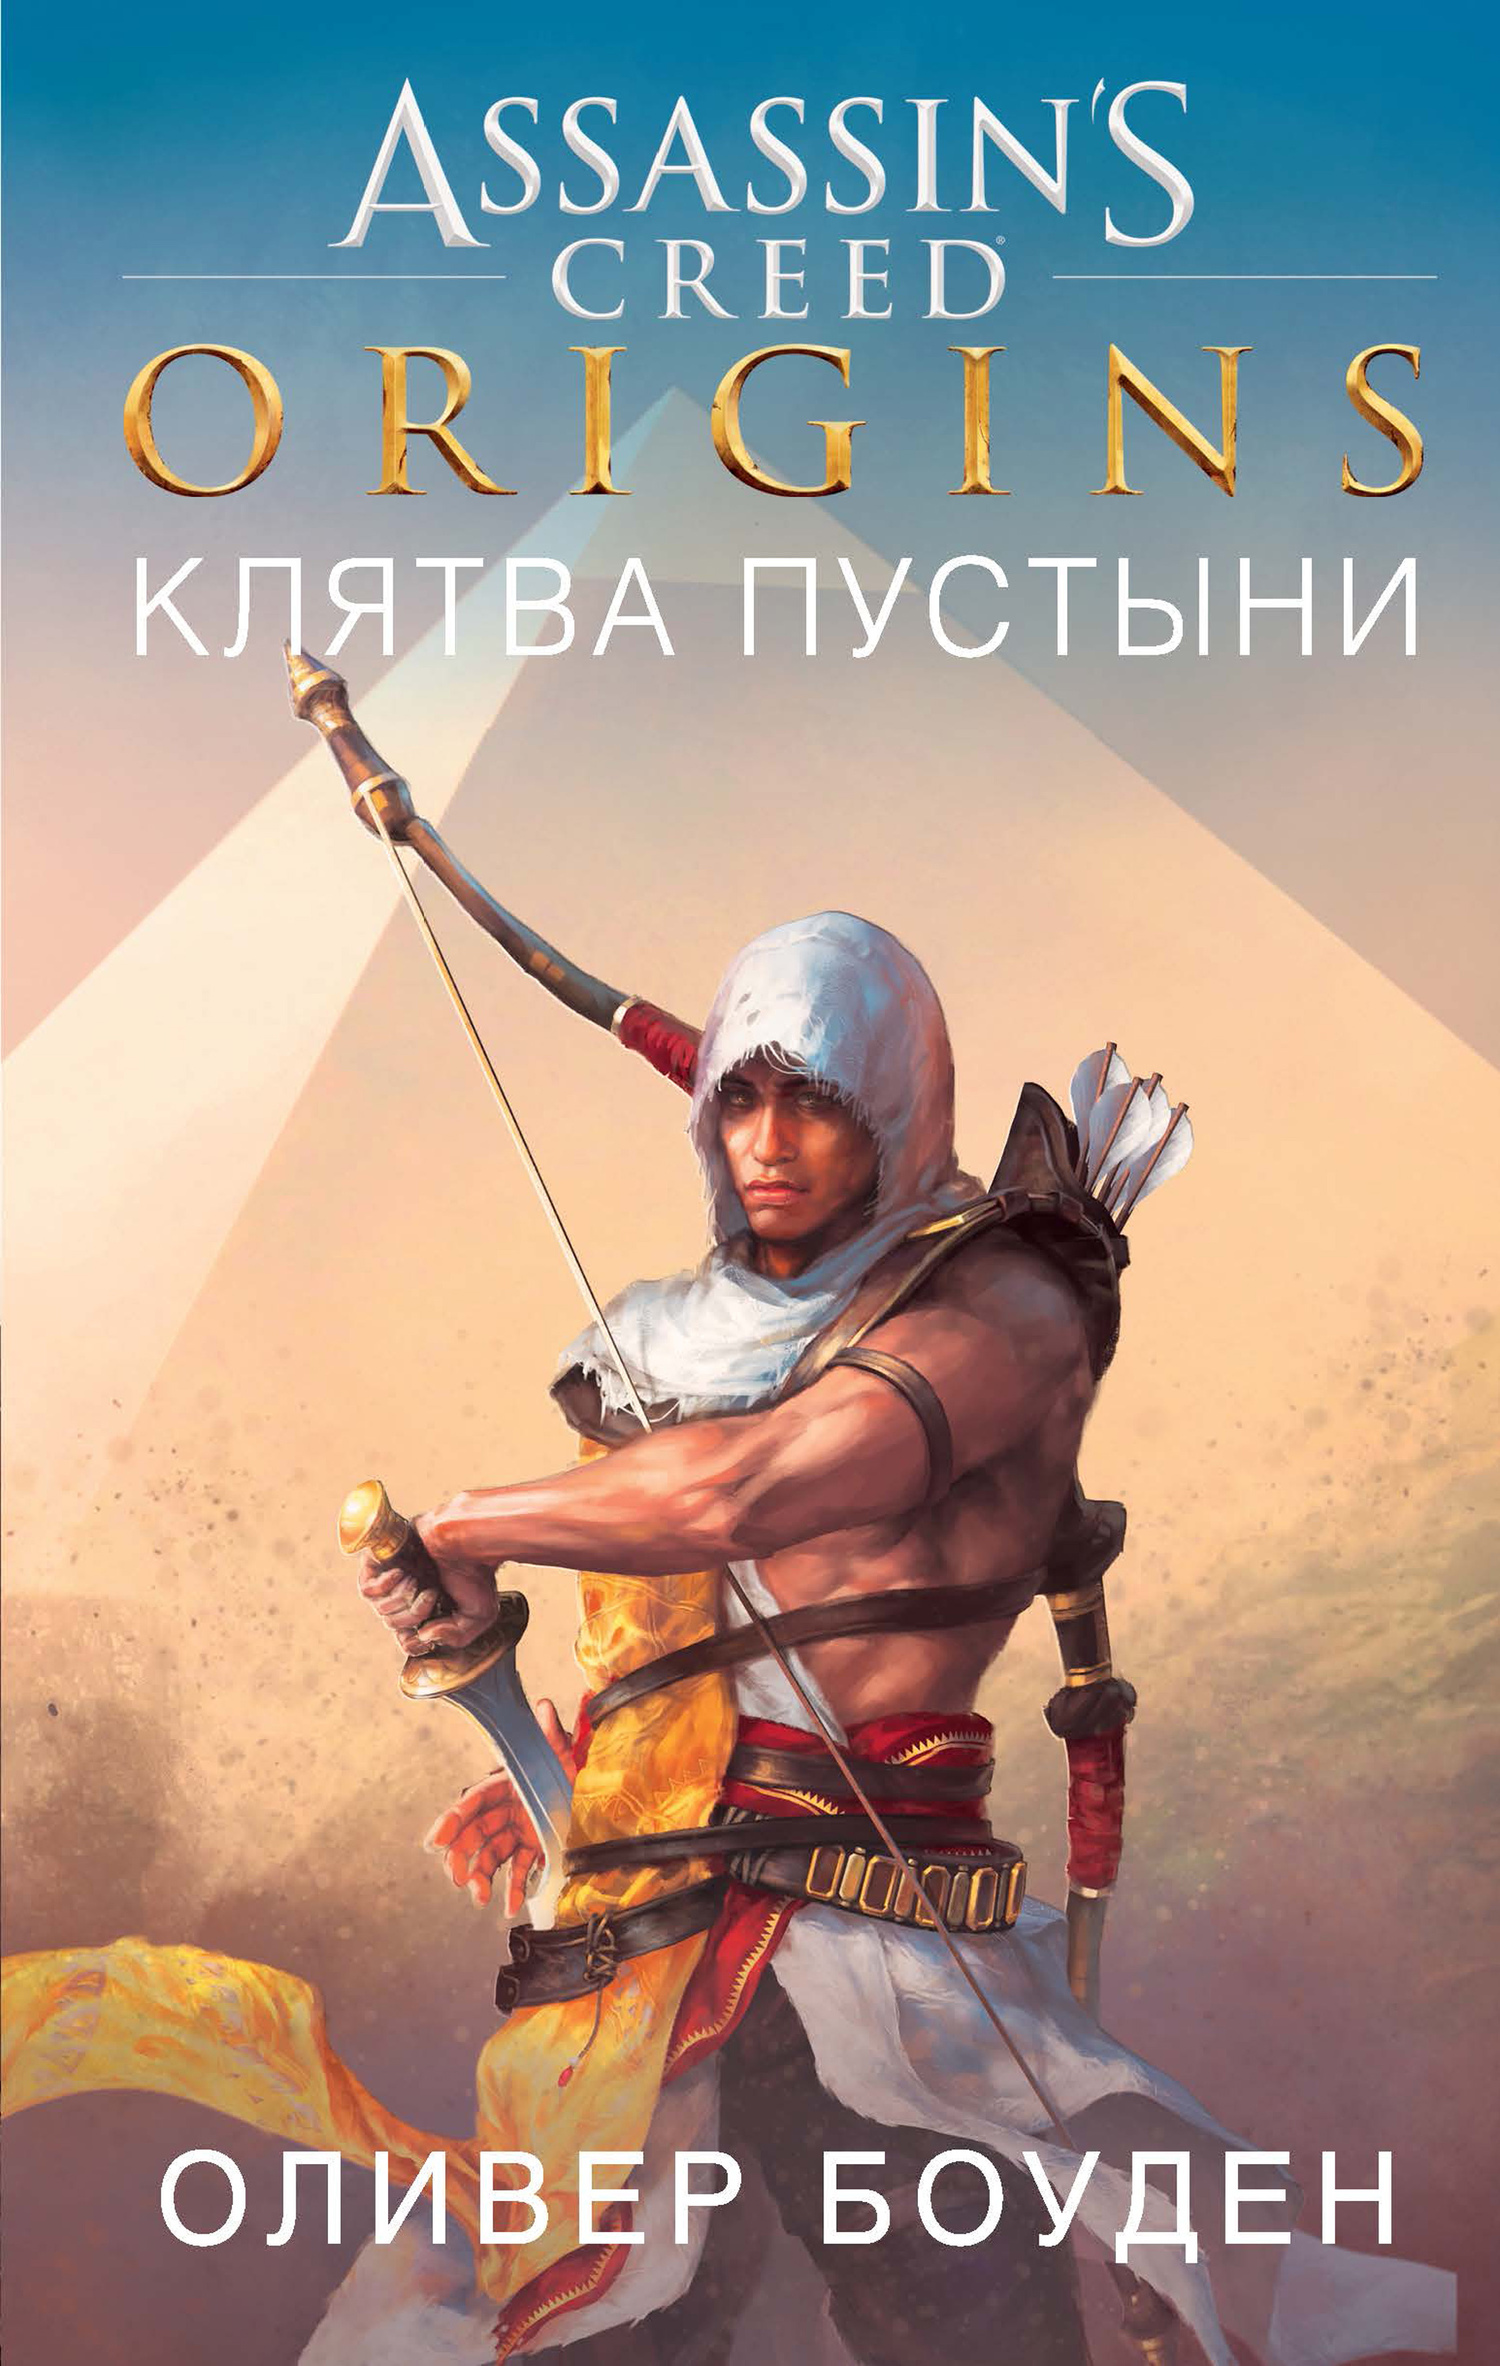 Assassin's Creed. Origins. Клятва пустыни – Оливер Боуден